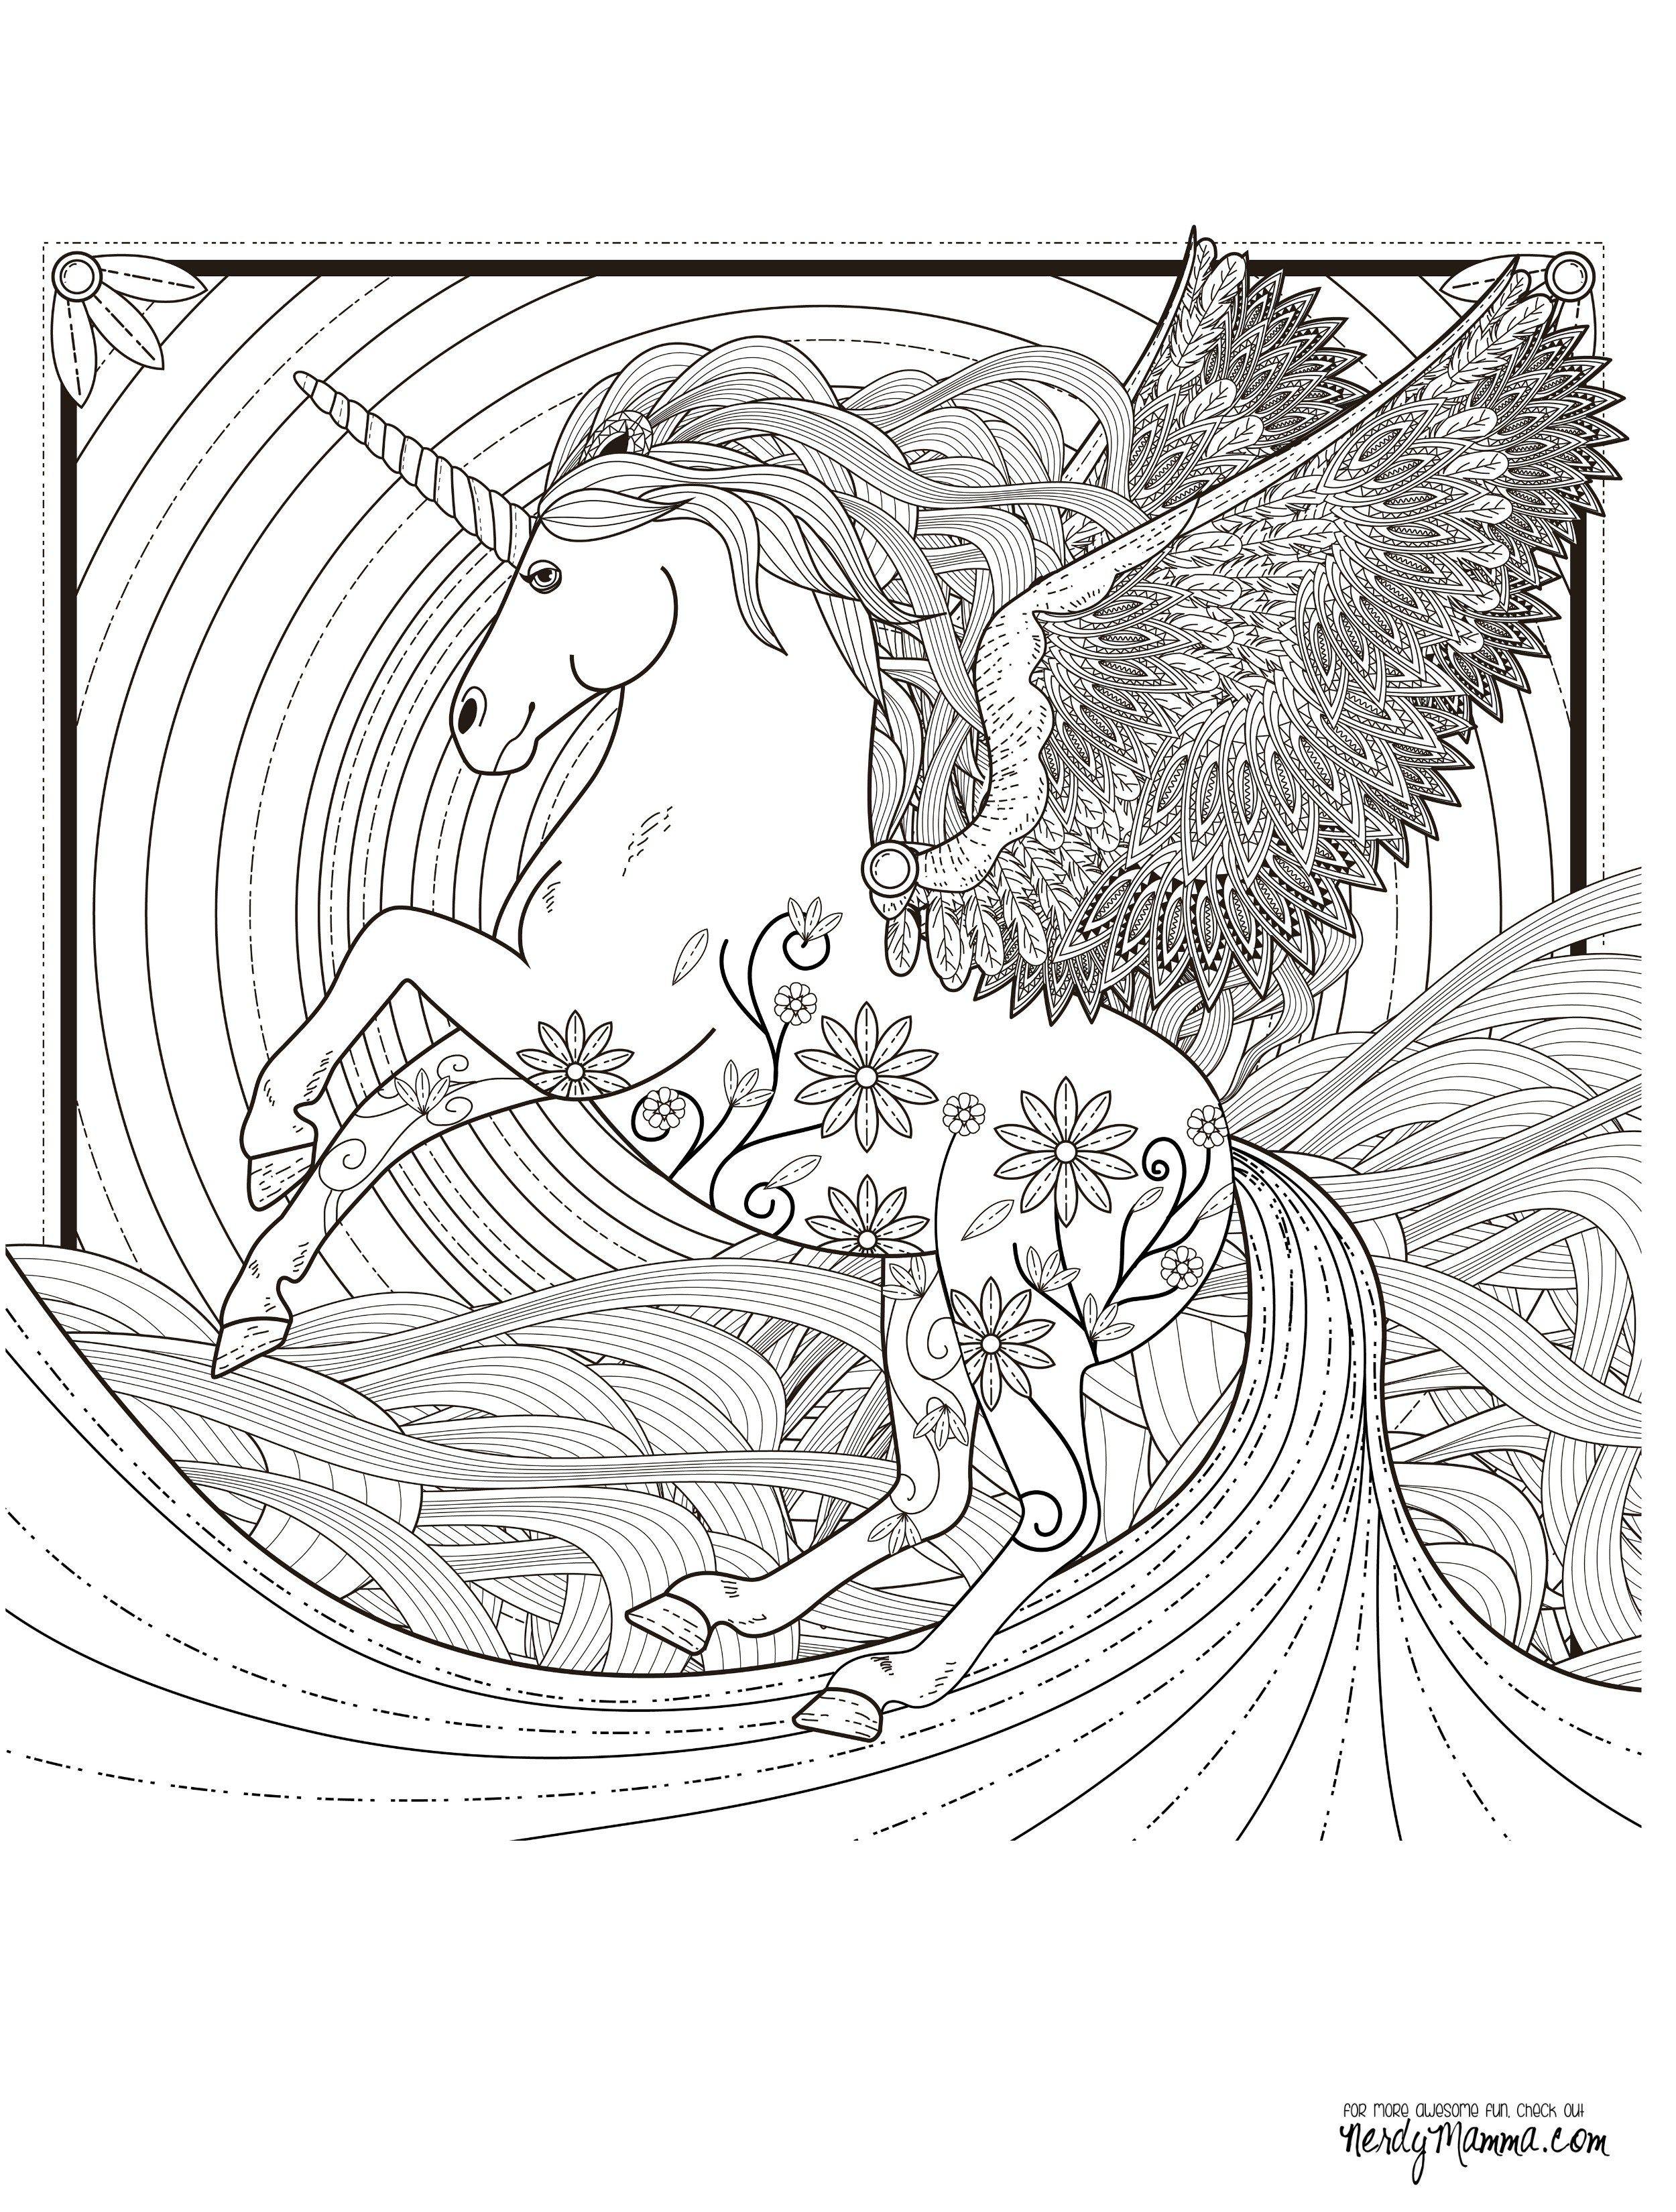 11 Free Printable Adult Coloring Pages Unicorn coloring